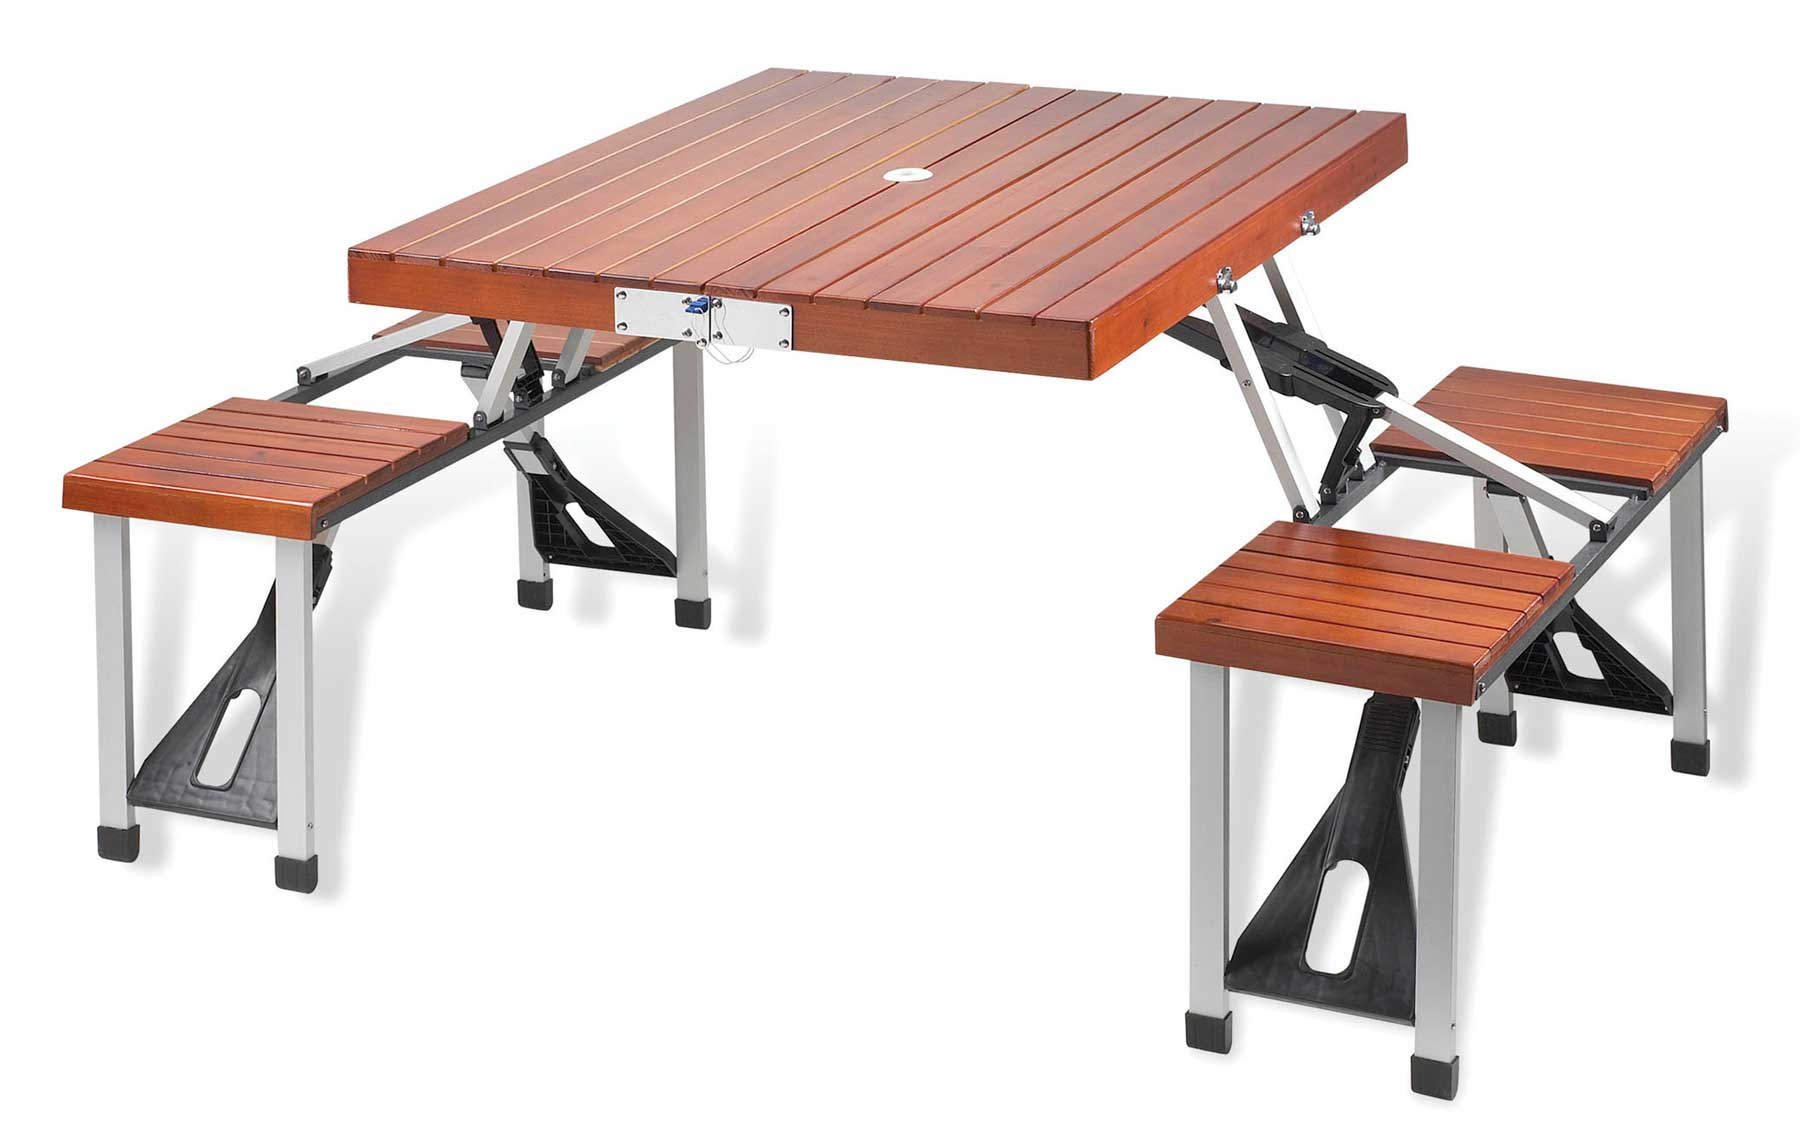 Folding wood table design advantages for Table retractable